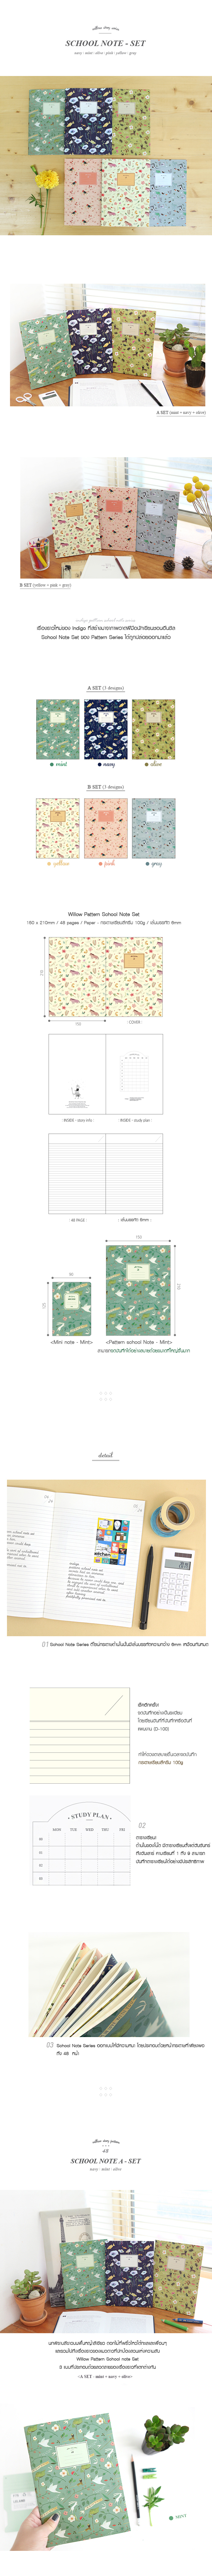 willowpattern-schoolnote-info3.jpeg